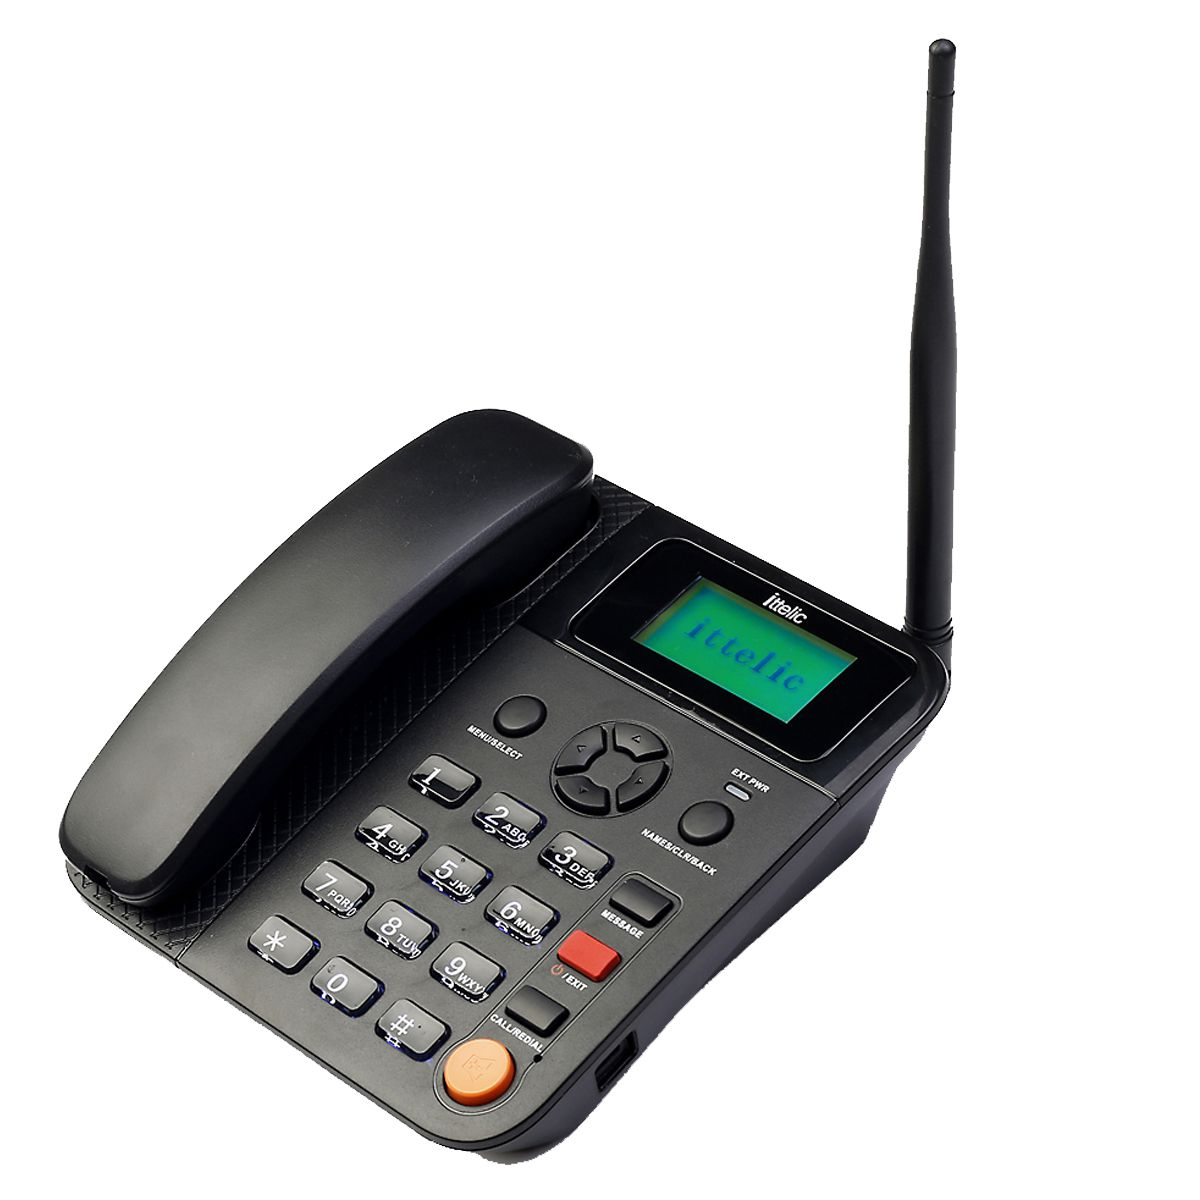 ittelic APP5623 Wireless GSM Landline Phone ( Black ) Dual Sim With FM  Radio and Long Battery Life